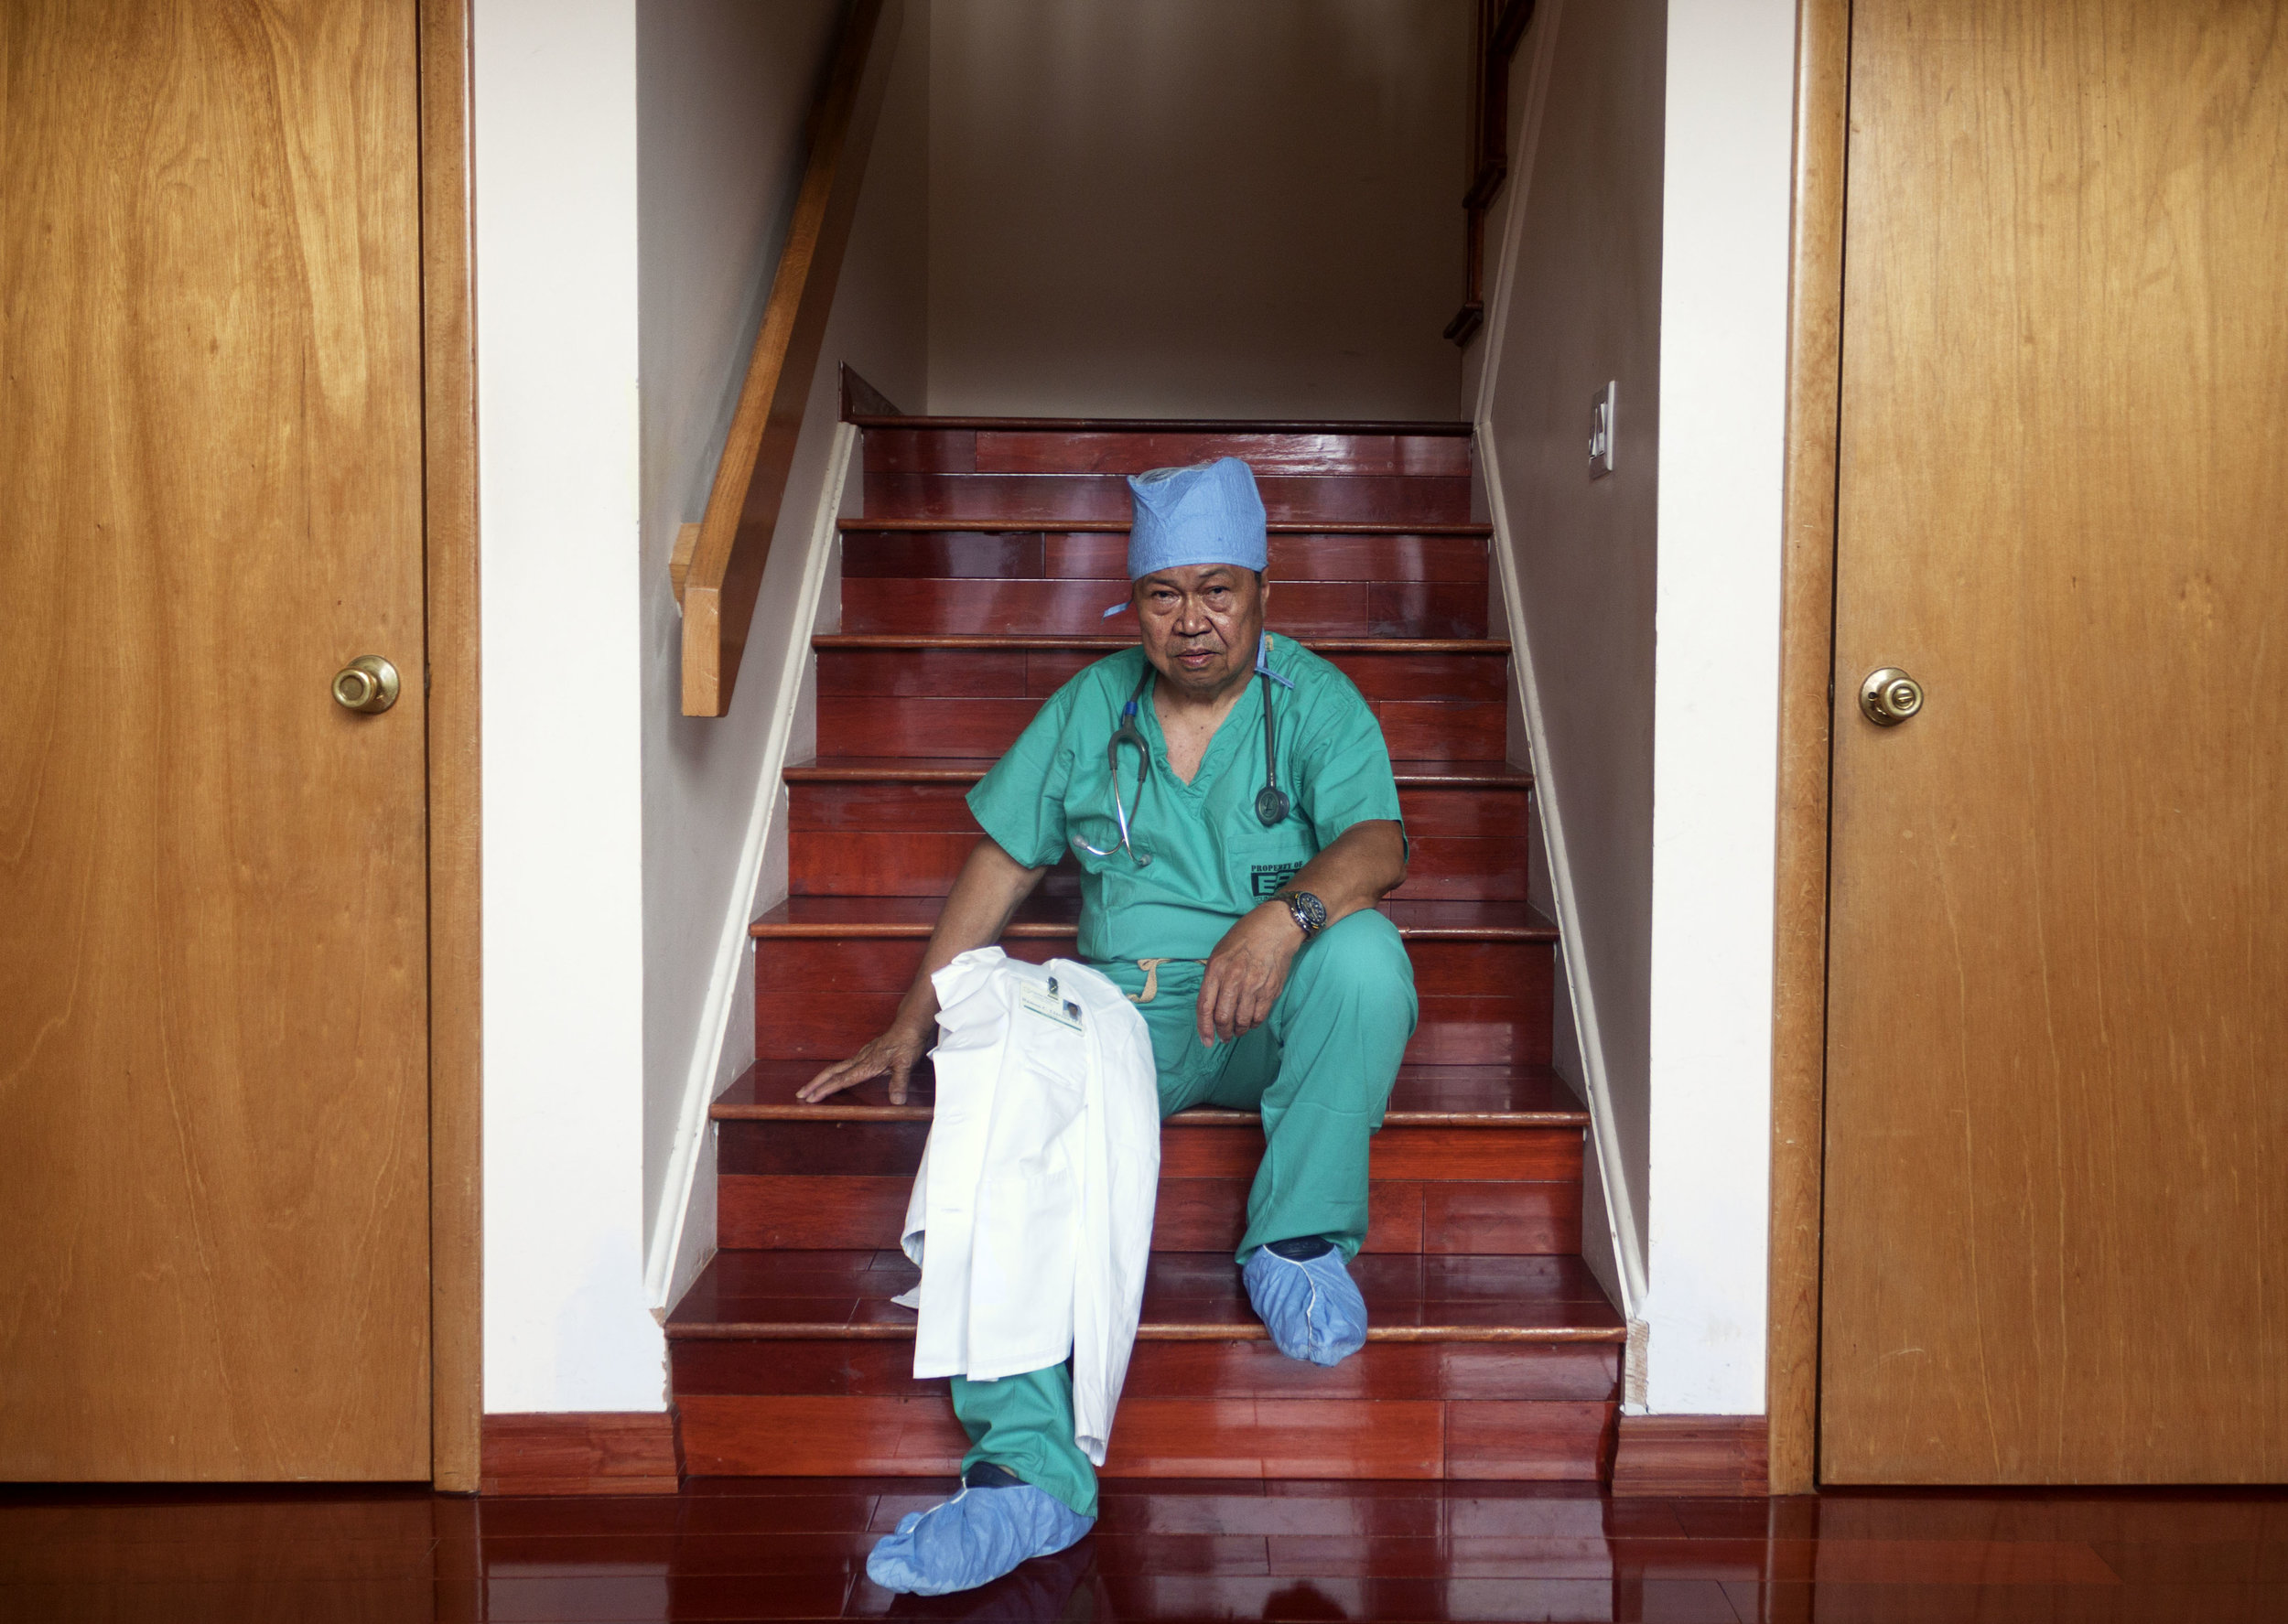 Doctor on Steps.jpg